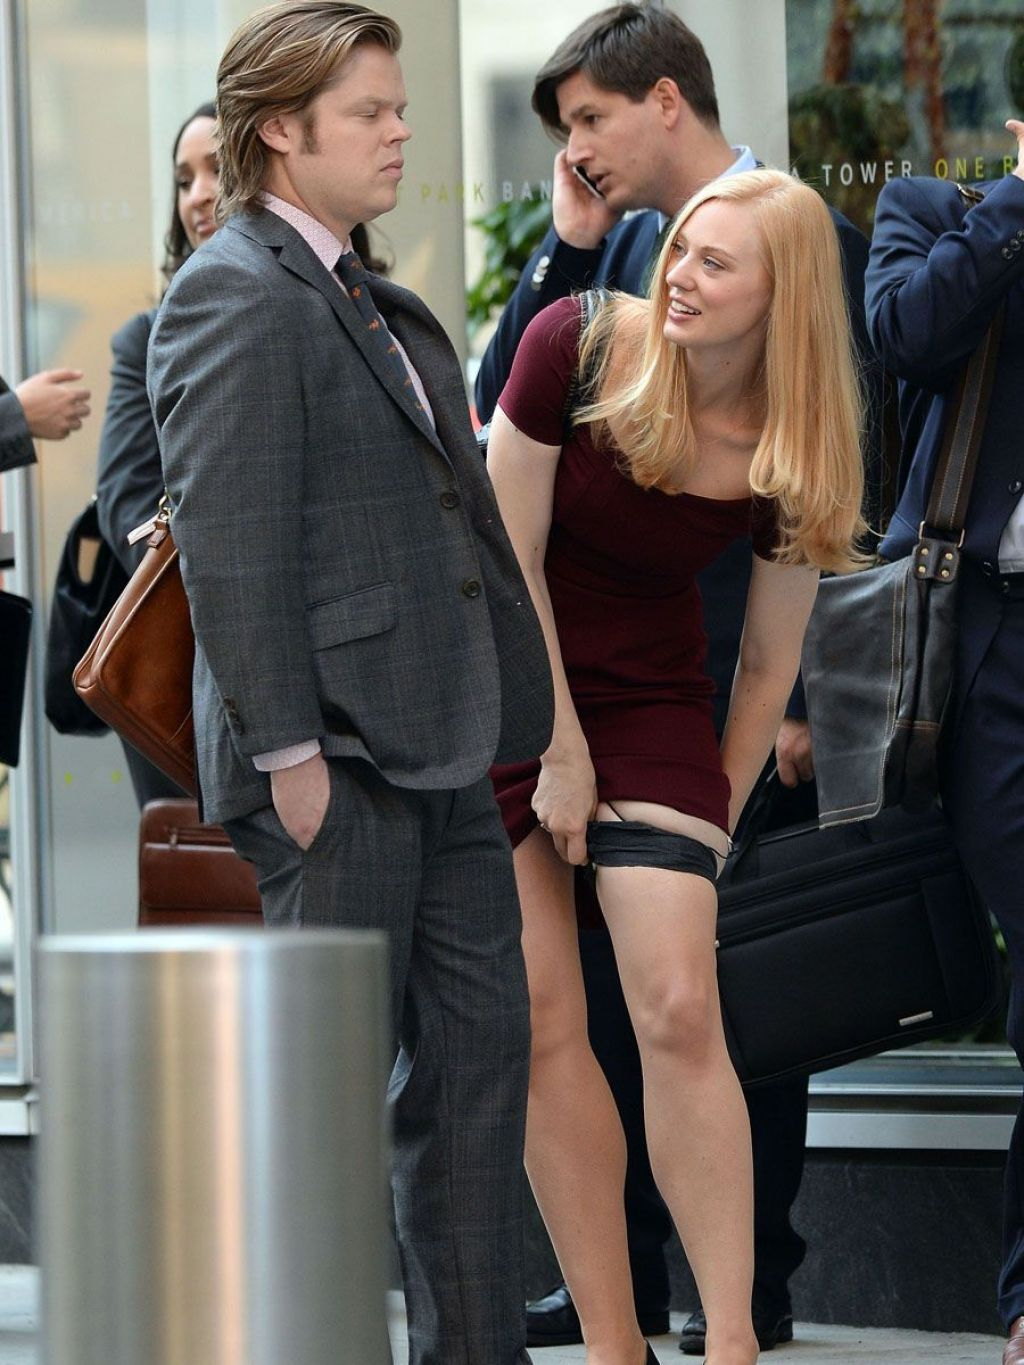 Deborah Ann Woll – 'Daredevil' TV Series Set in New York City, Aug. 2014